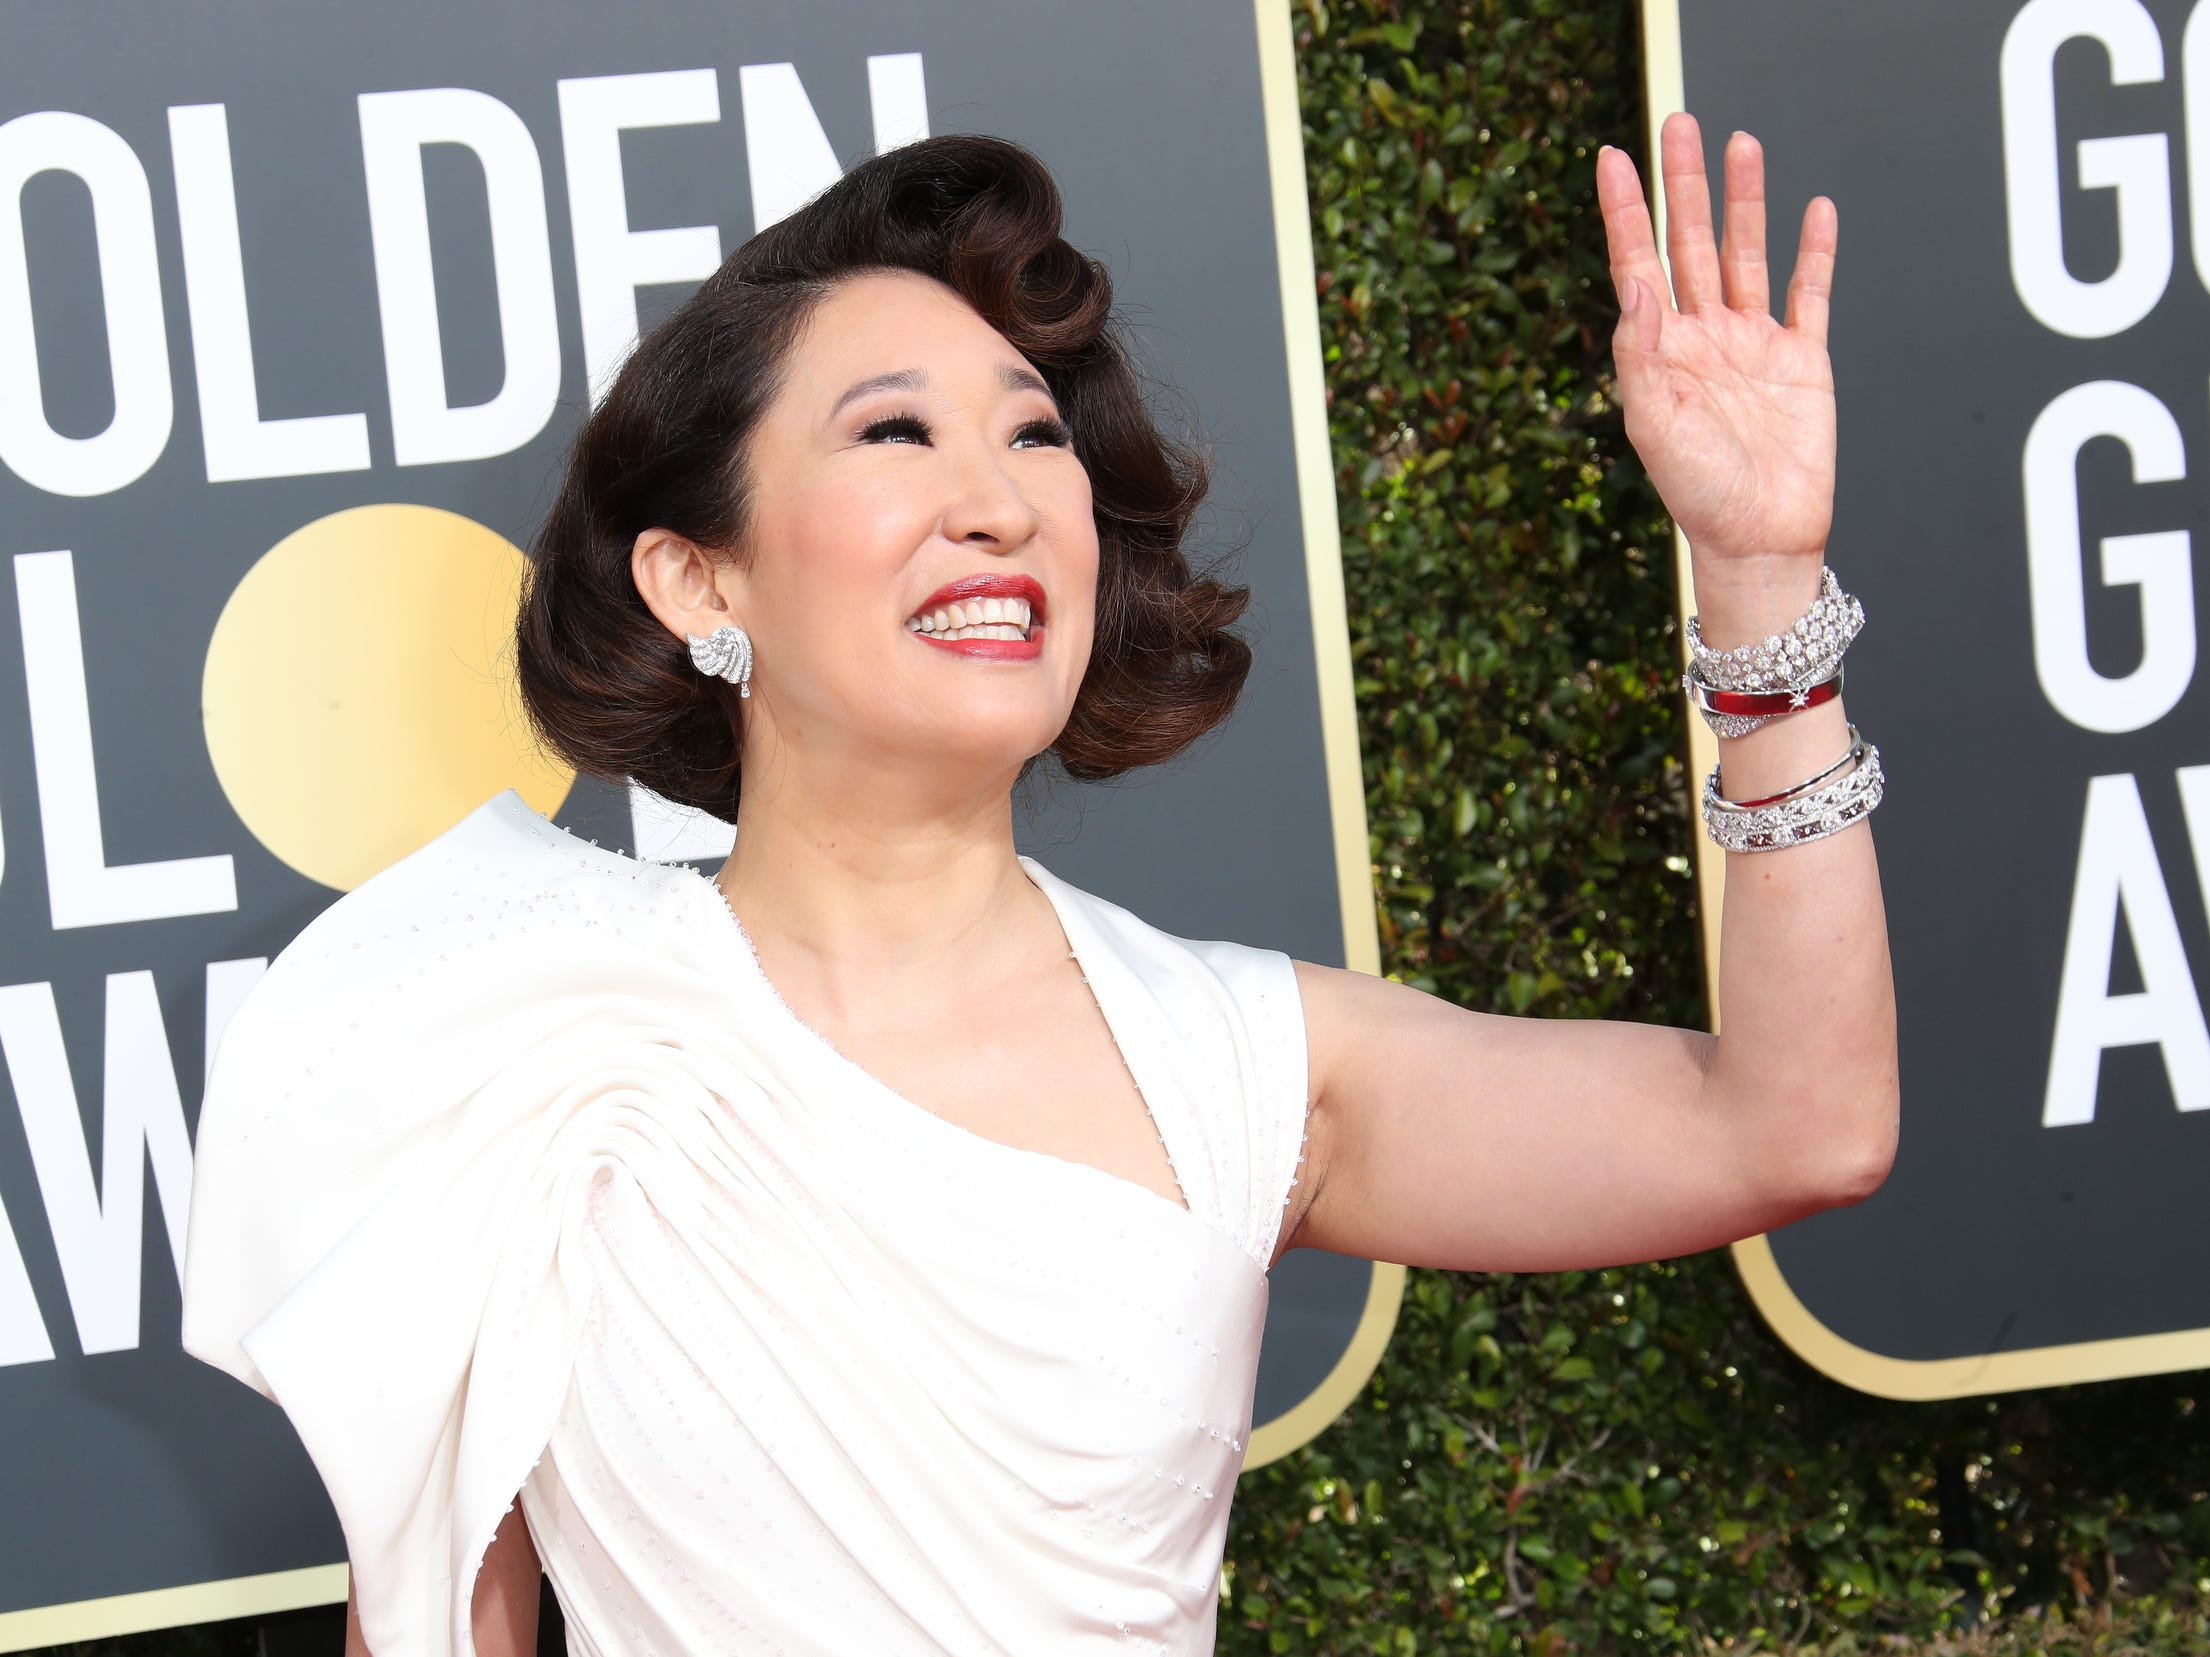 Golden Globes co-host Sandra Oh arrives